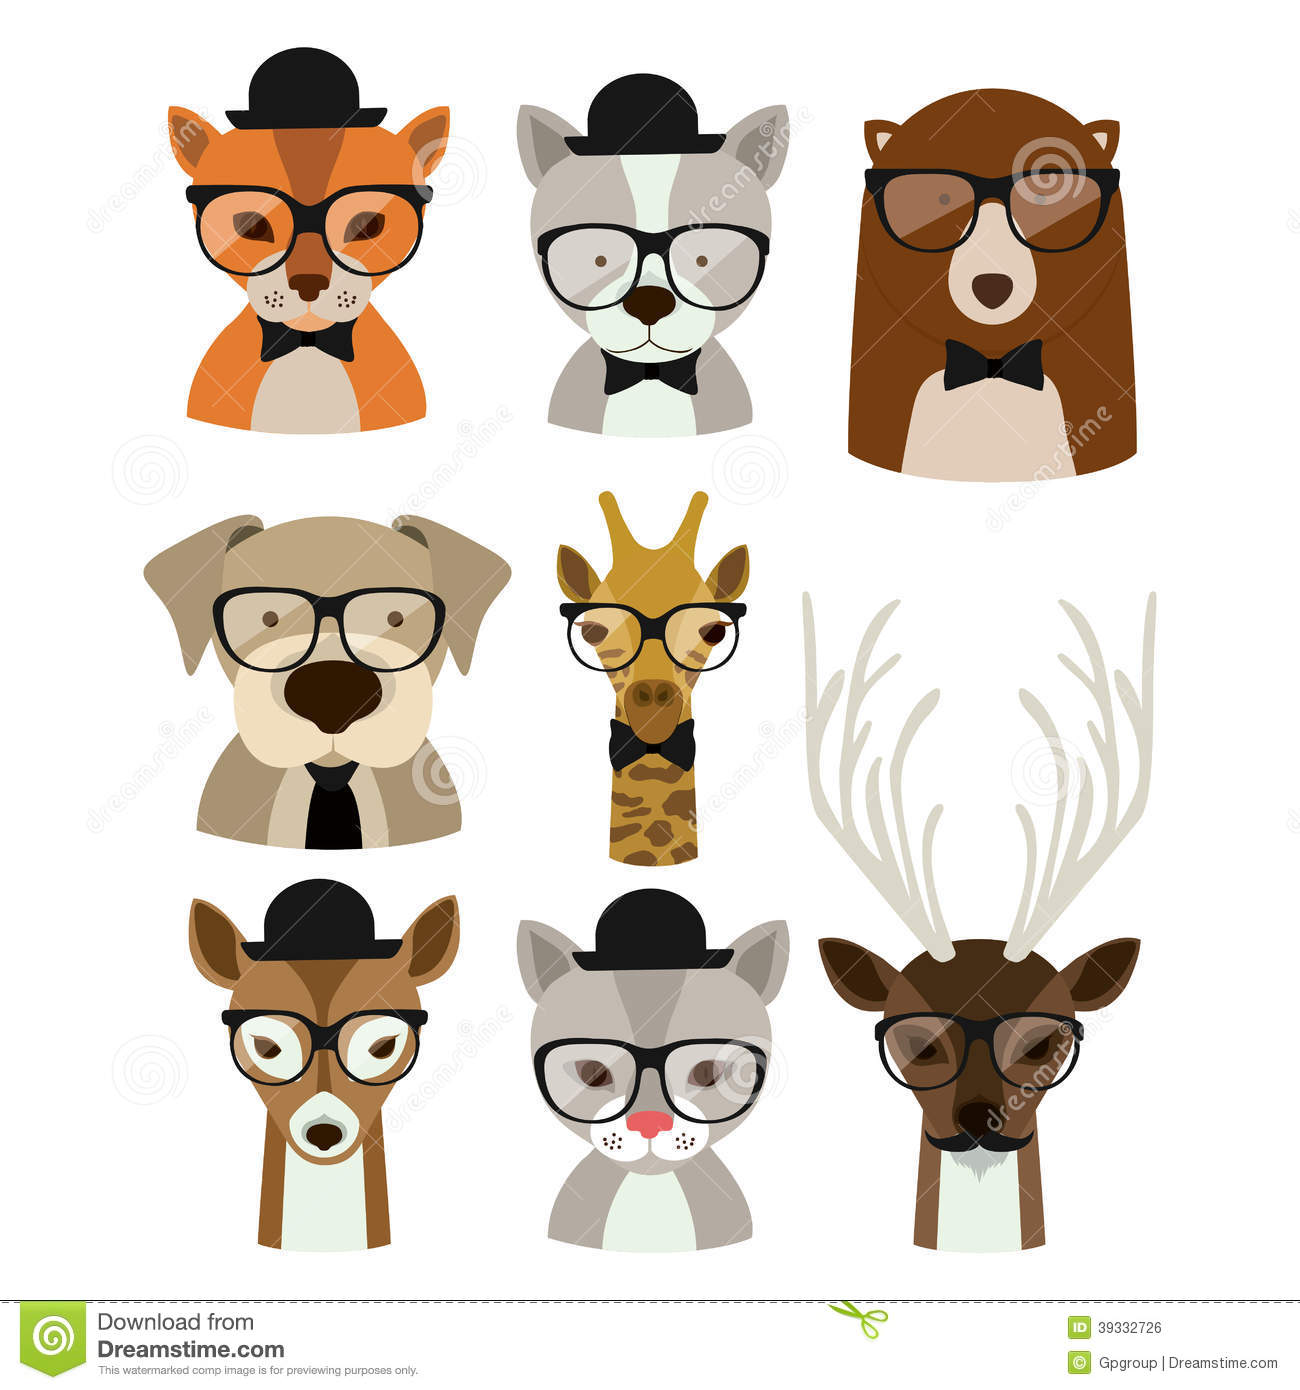 Animal hipster design stock vector. Illustration of deer ...